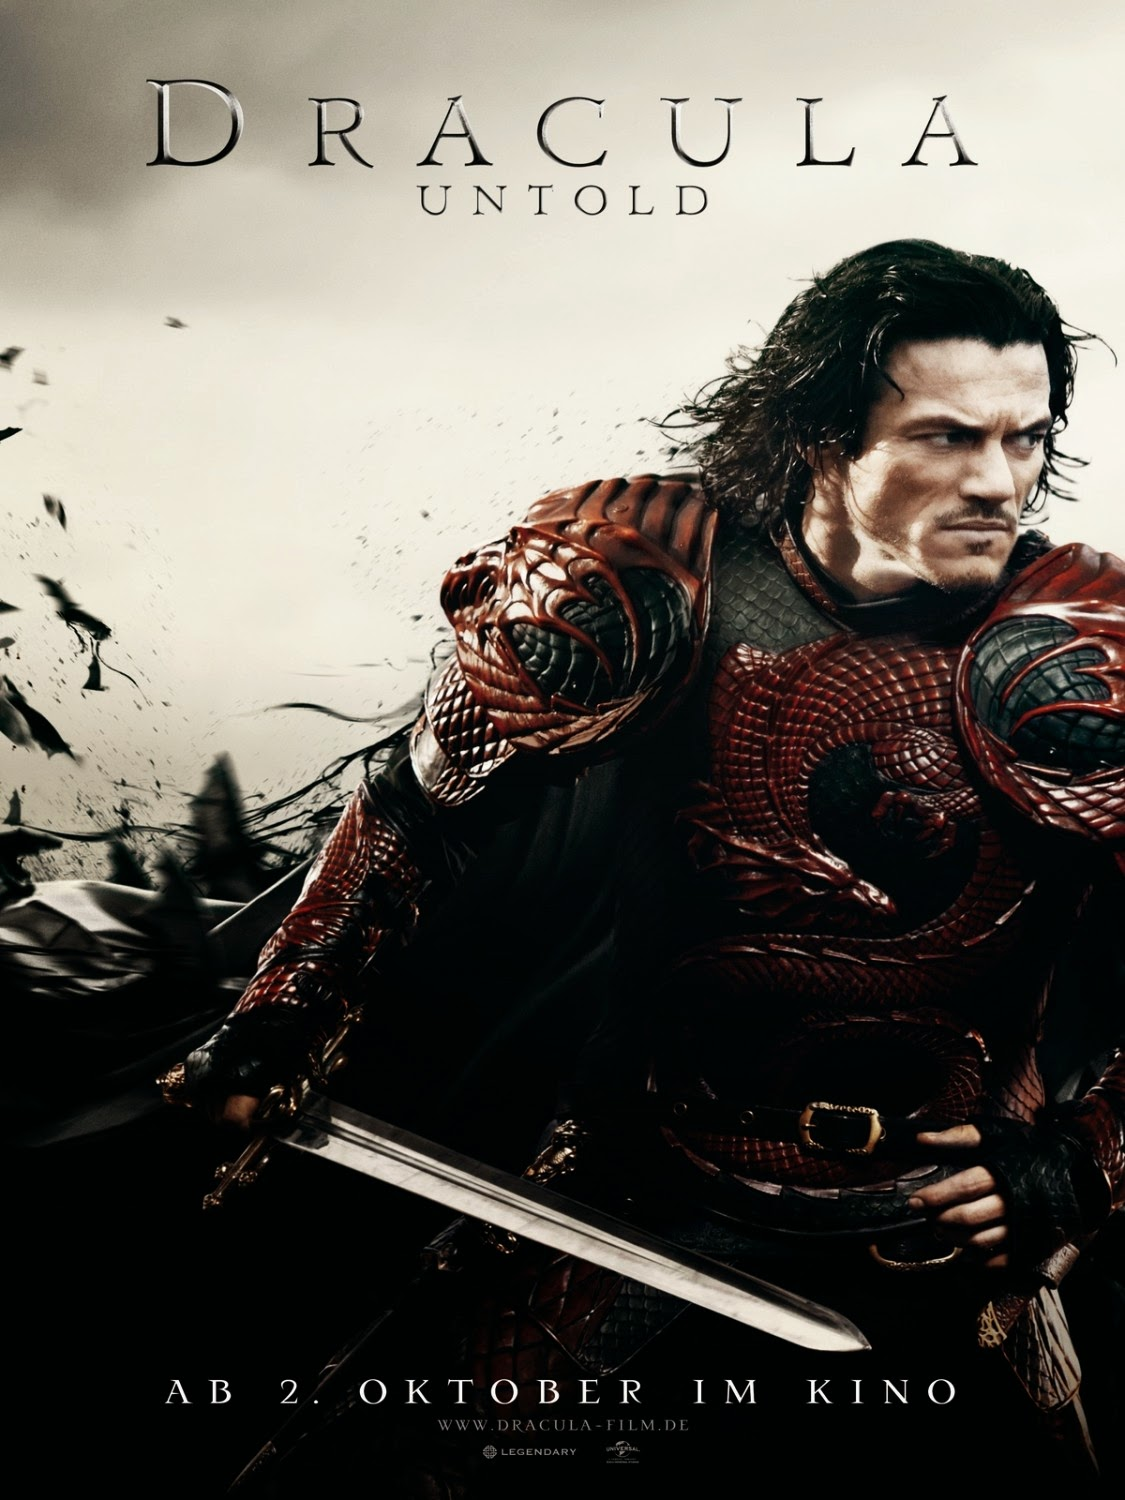 In dracula untold the origin story of the man who became dracula gary